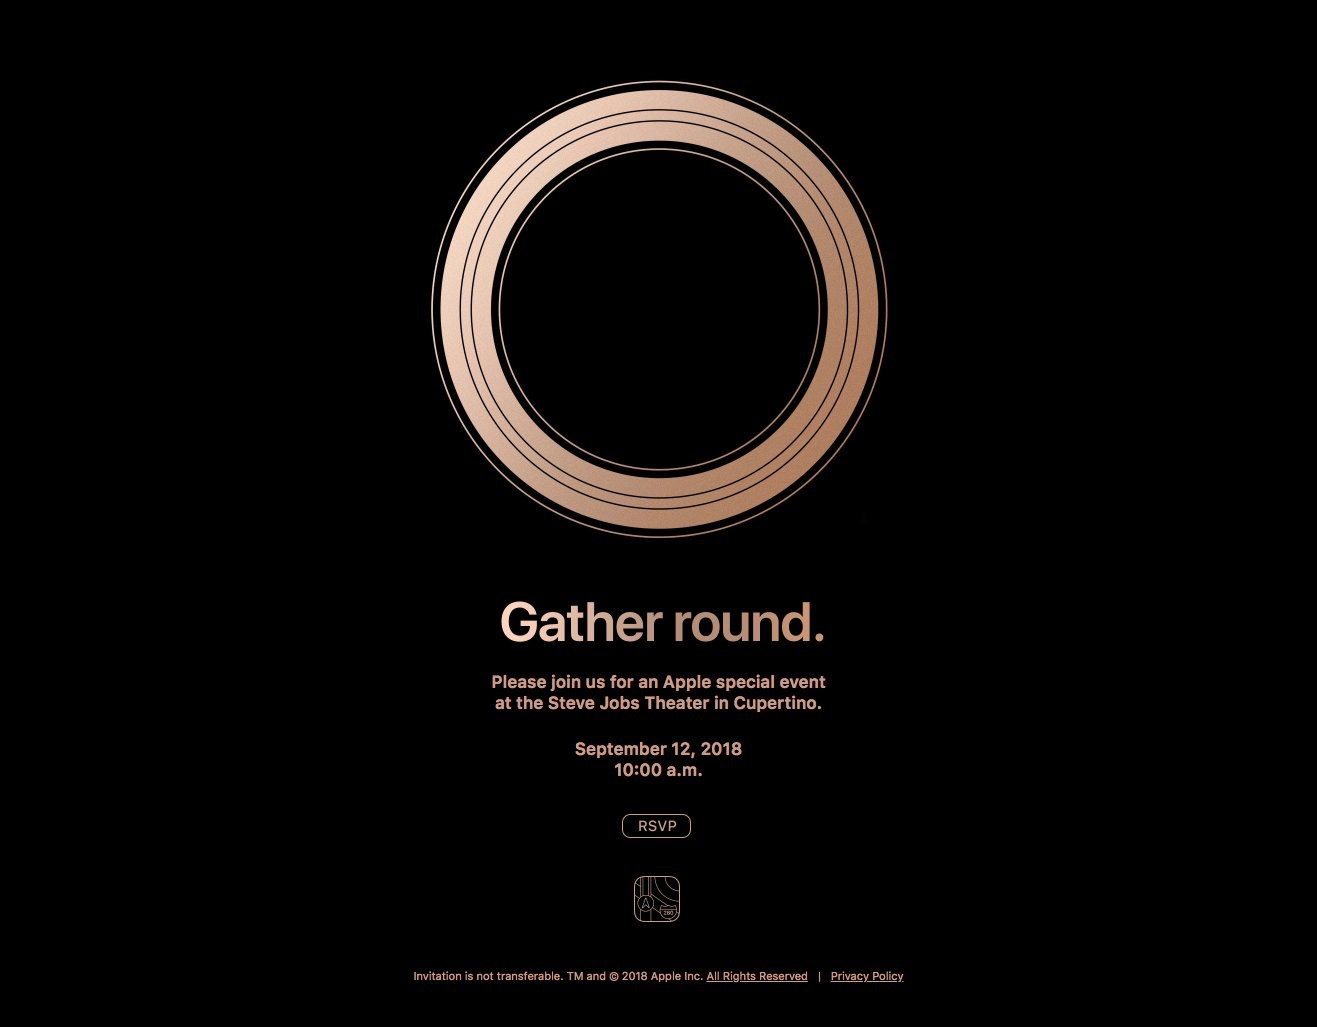 iPhones, Apple Watches, Oh My! Apple Event Recap